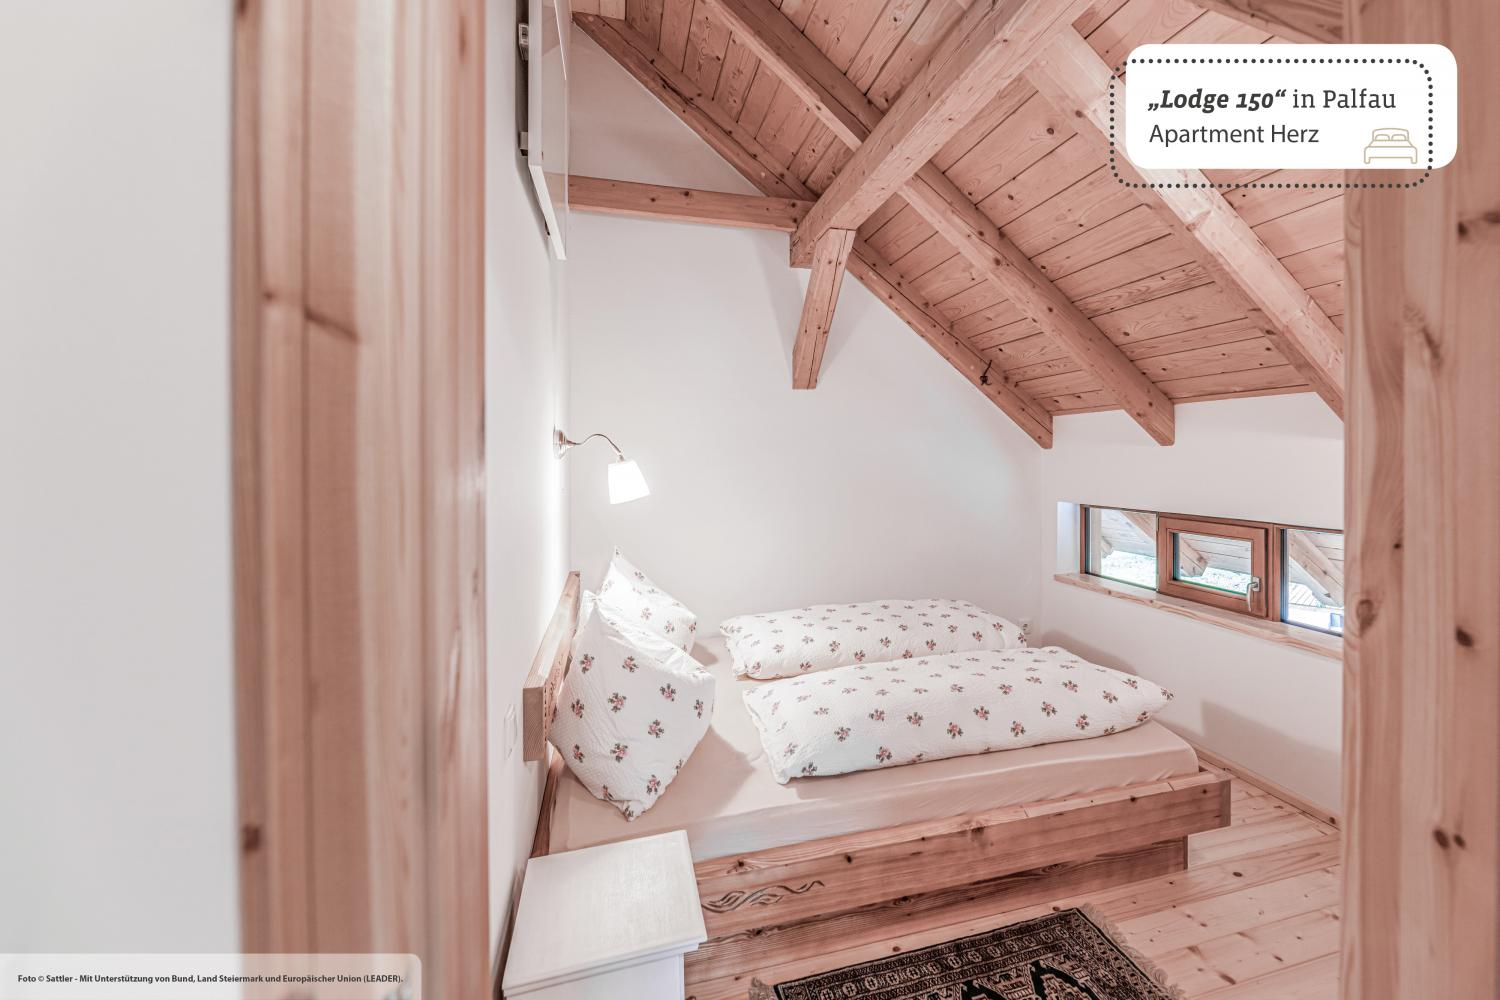 """Lodge 150"" - Apartment Herz 